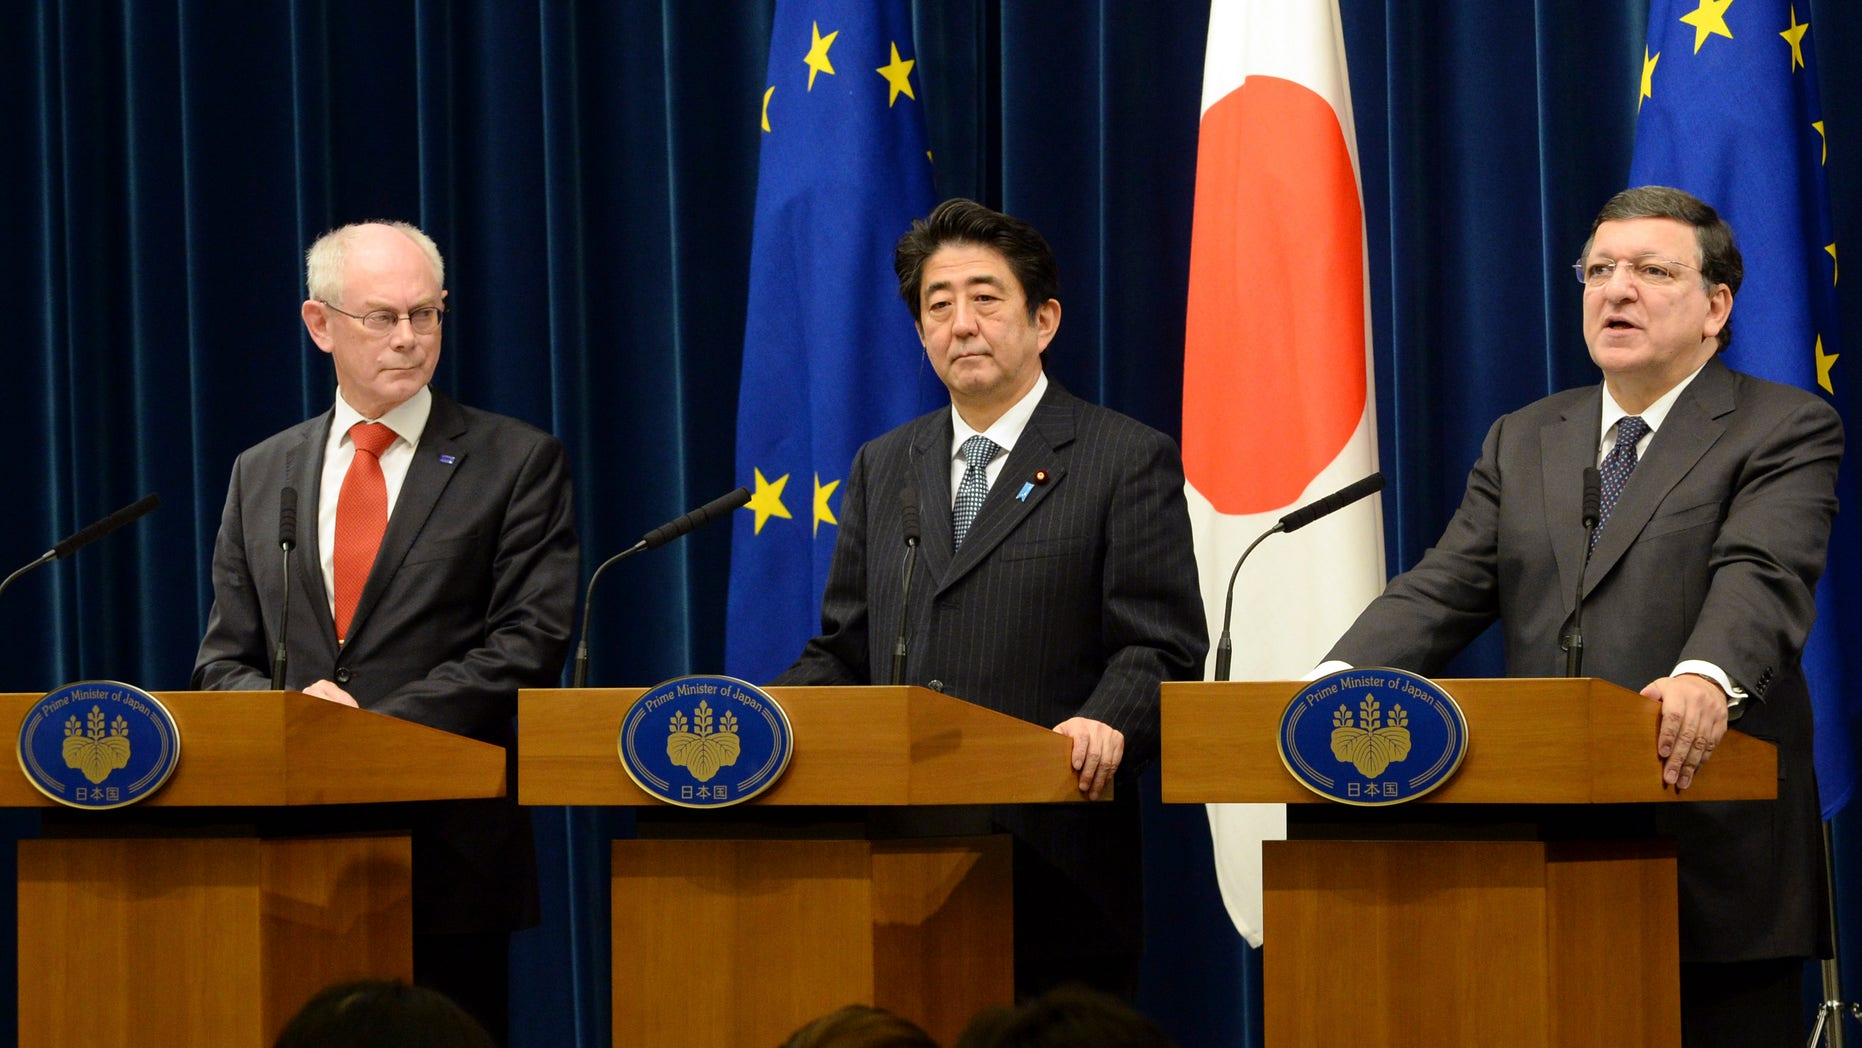 European Commission President Jose Manuel Barroso, right, delivers a speech while Japanese Prime Minister Shinzo Abe, center, and European Council President Herman Van Rompuy, look on during their joint press statement after their EU-Japan summit talks at Abe's official residence in Tokyo Tuesday, Nov. 19, 2013. (AP Photo/Toshifumi Kitamura, Pool)